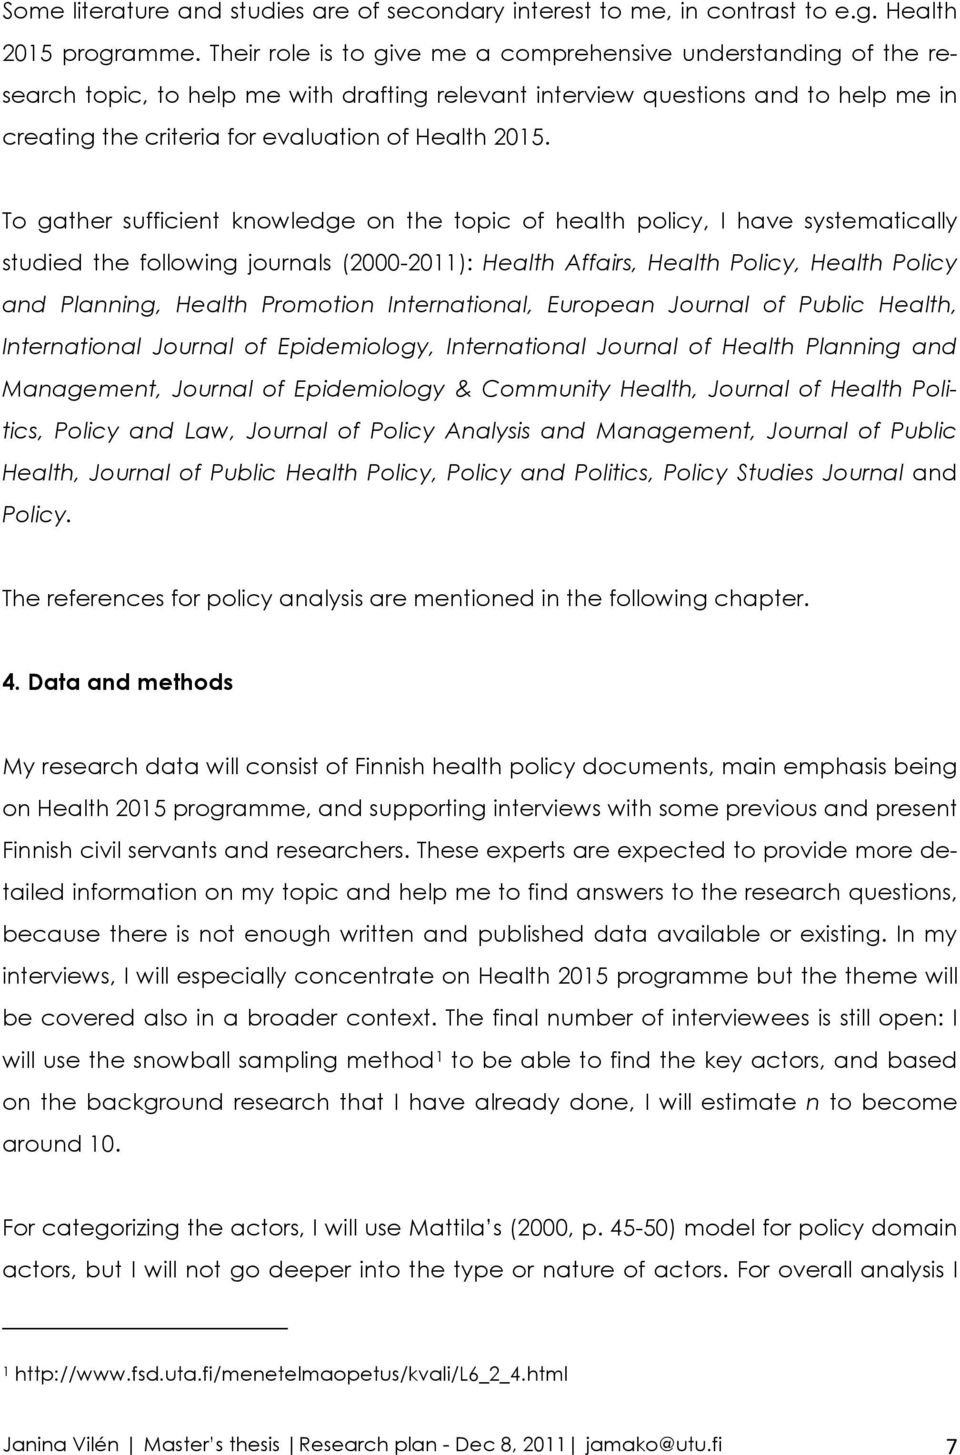 2015. To gather sufficient knowledge on the topic of health policy, I have systematically studied the following journals (2000-2011): Health Affairs, Health Policy, Health Policy and Planning, Health